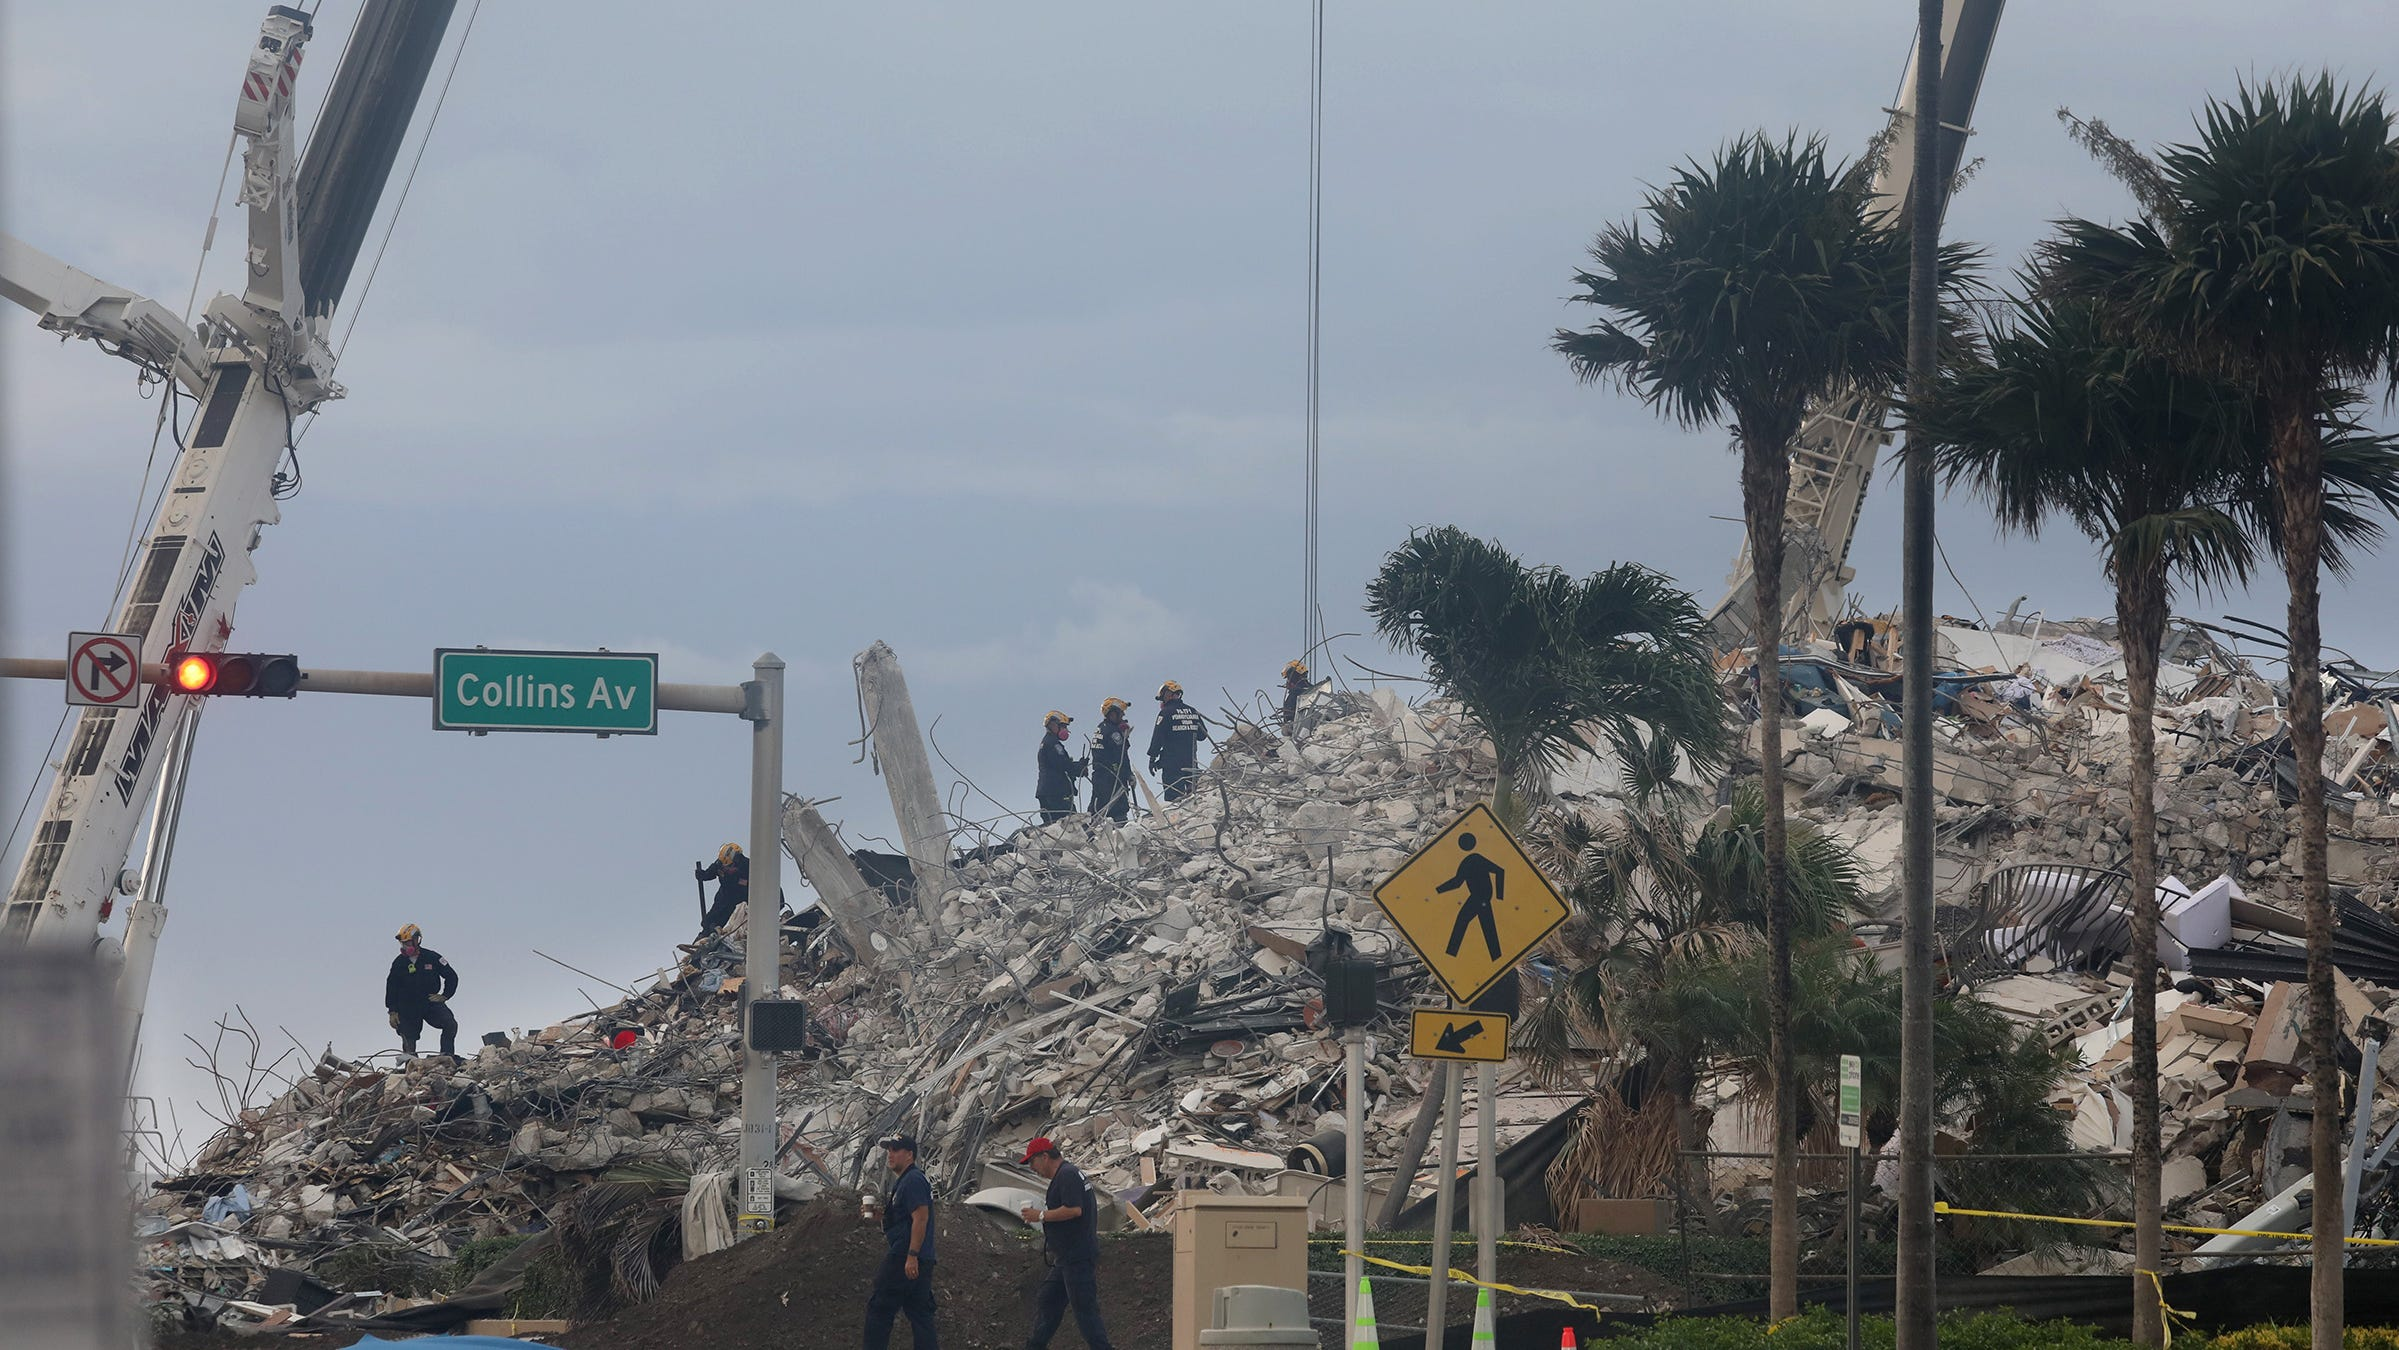 Search and rescue crews work on top of the rubble of the Champlain Towers South condo in Surfside, Florida July 5, 2021 after the remaining portions of the collapsed condo was leveled by controlled implosion Sunday night.